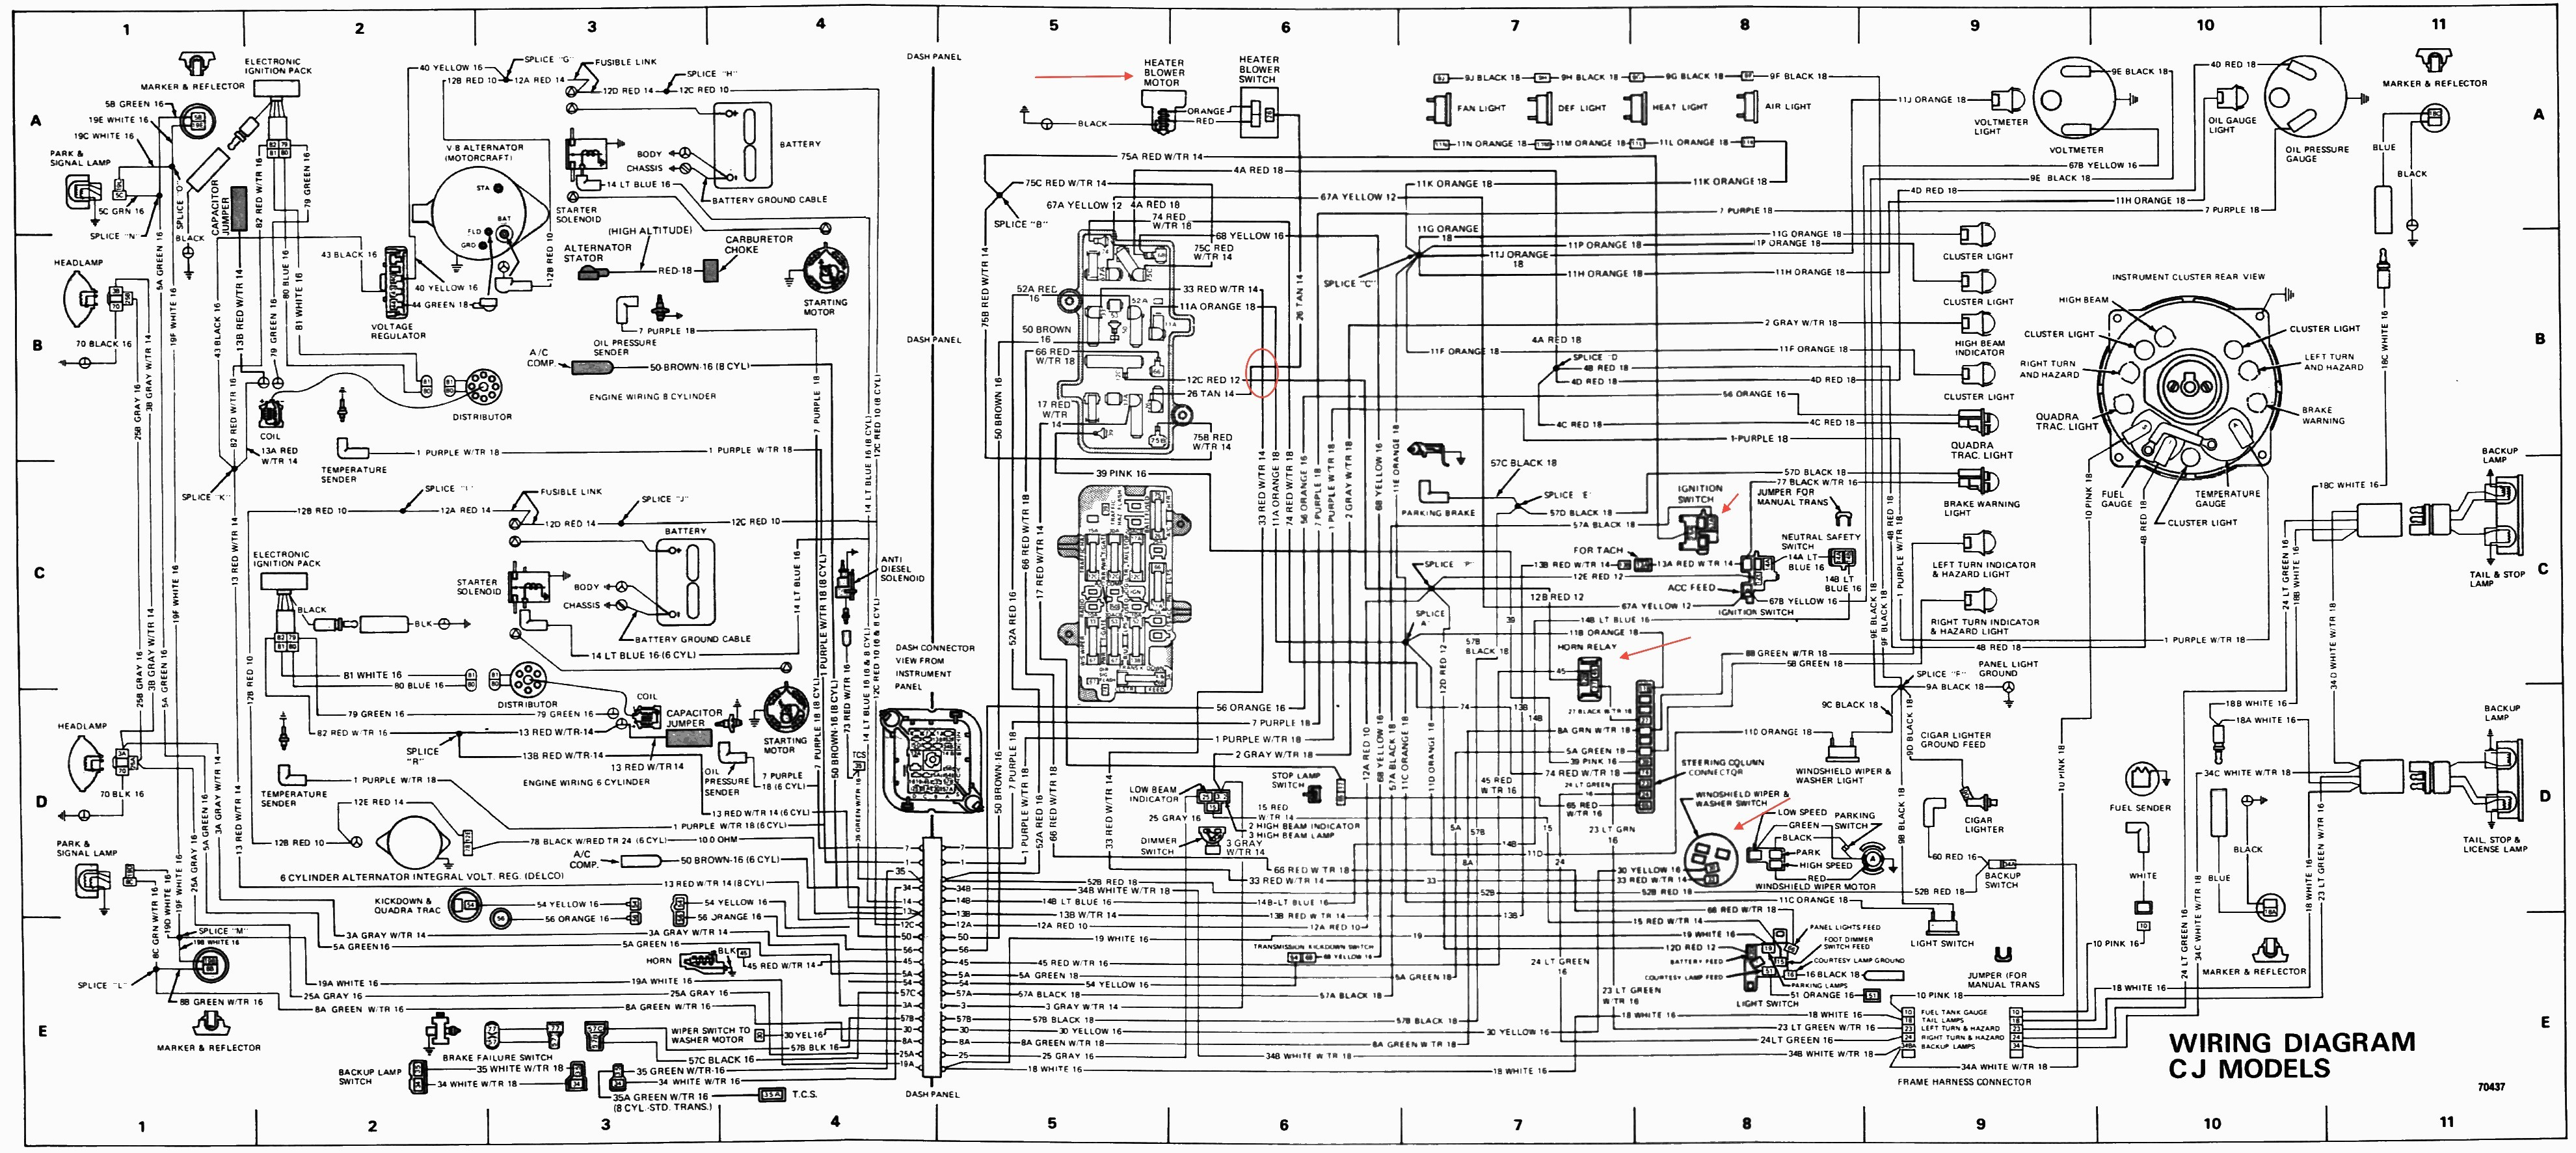 well amc 360 wiring diagram for jeep on dauntless 225 engine diagram rh dksnek pw